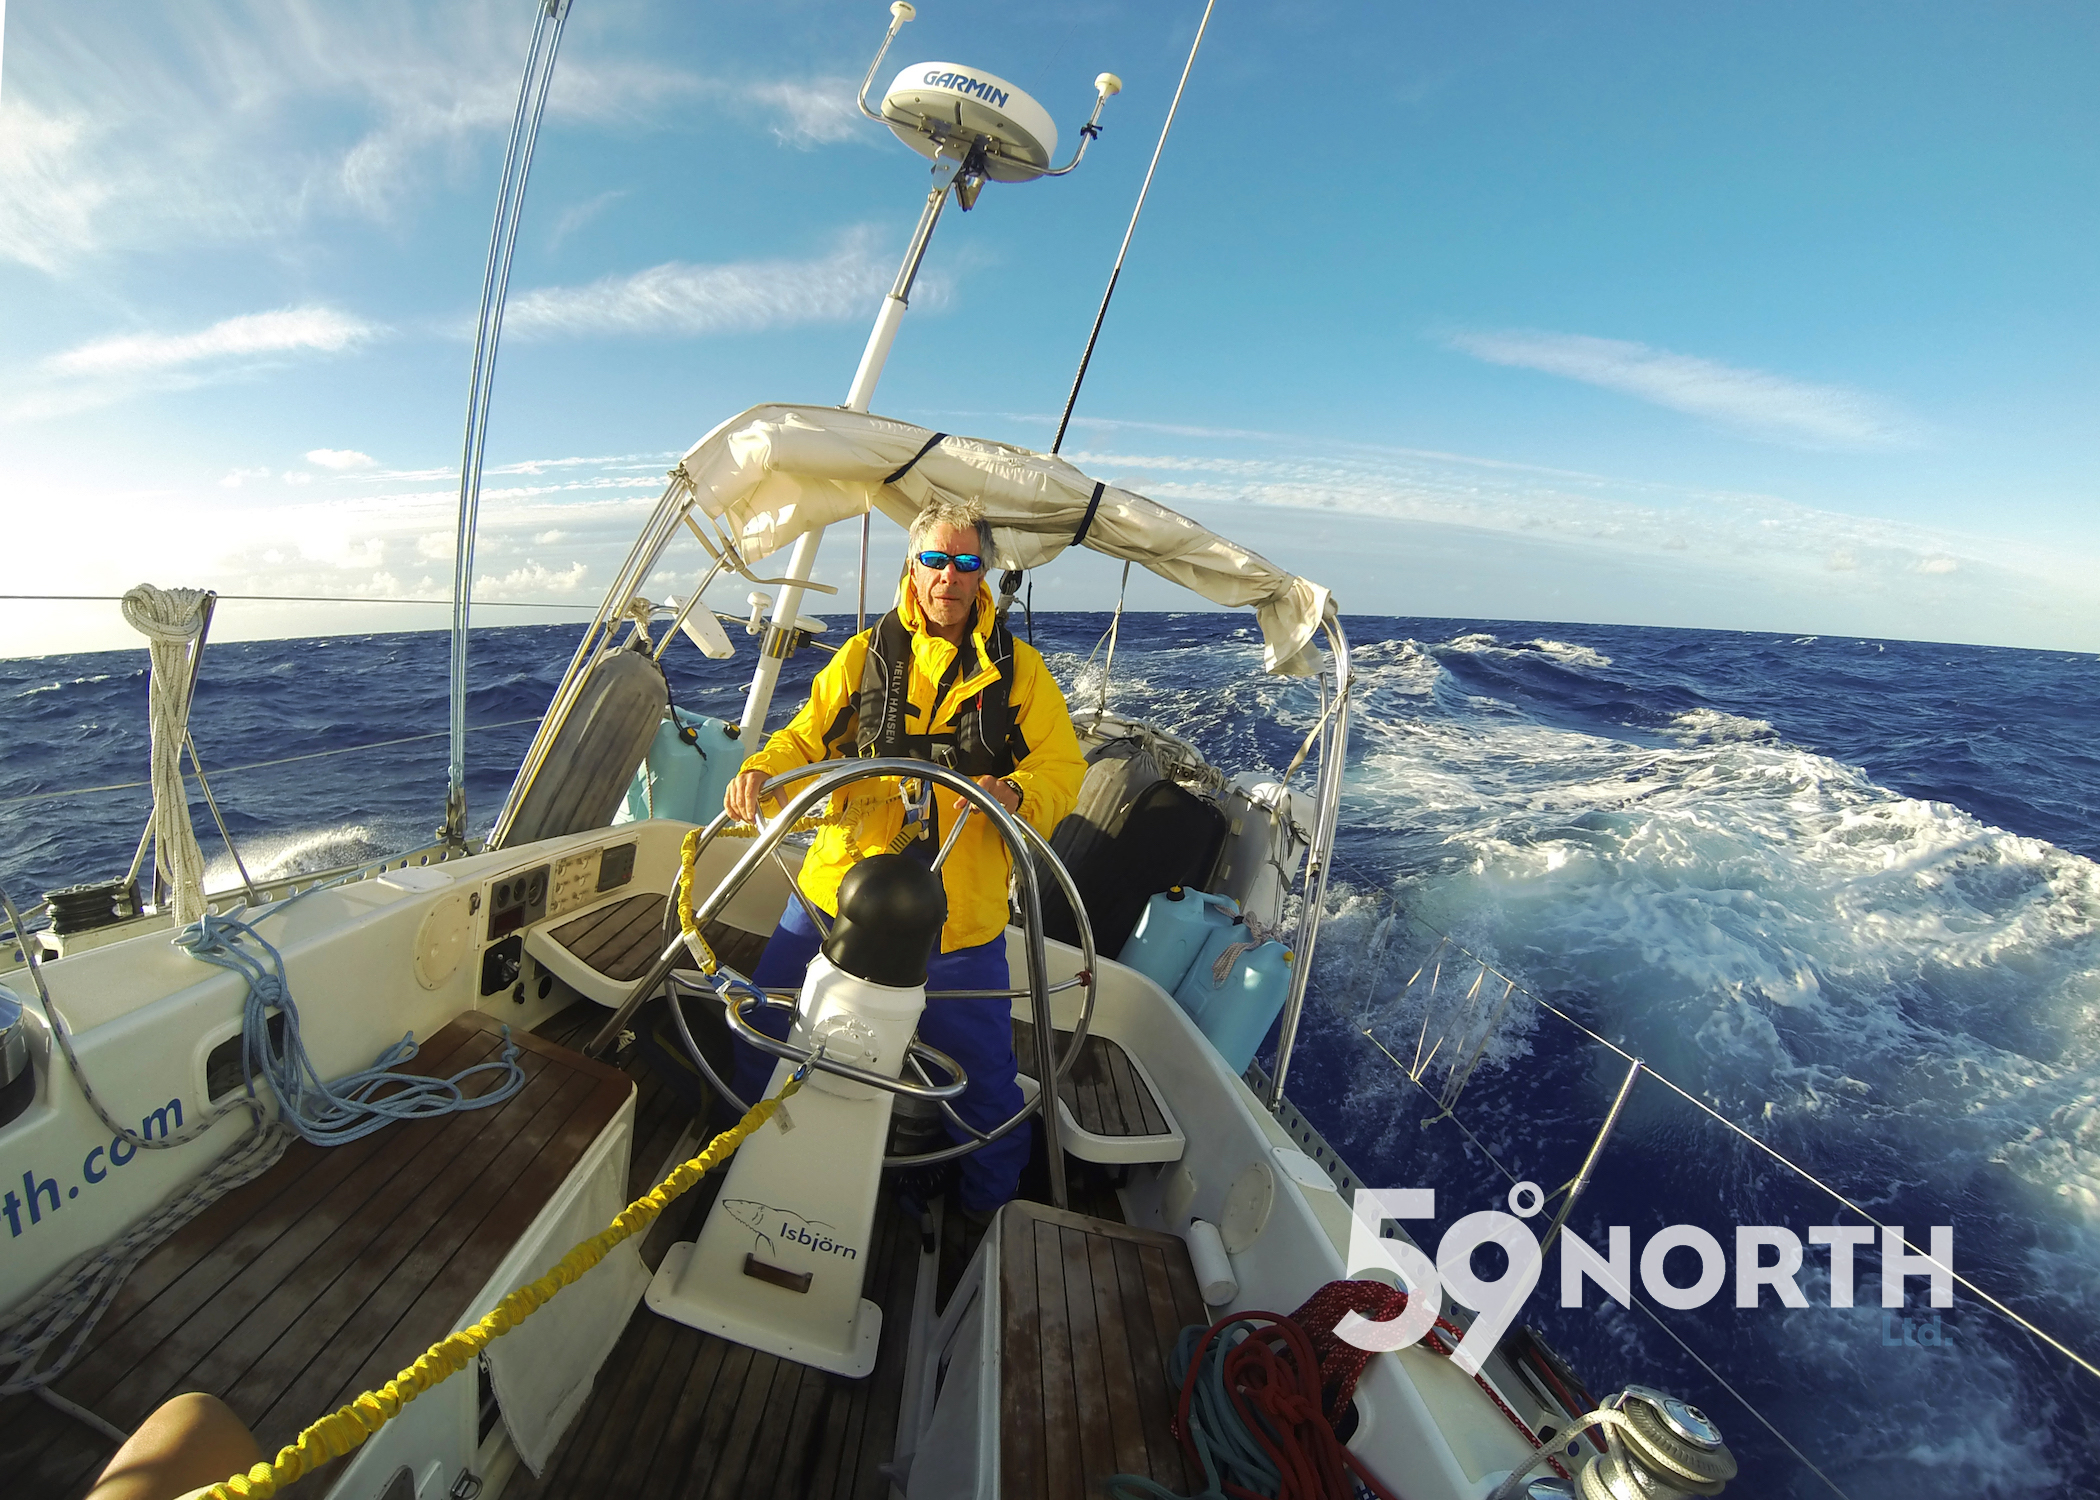 Crew Bruce at the helm, great sailing south to the Caribbean in the C1500! Nov 2016